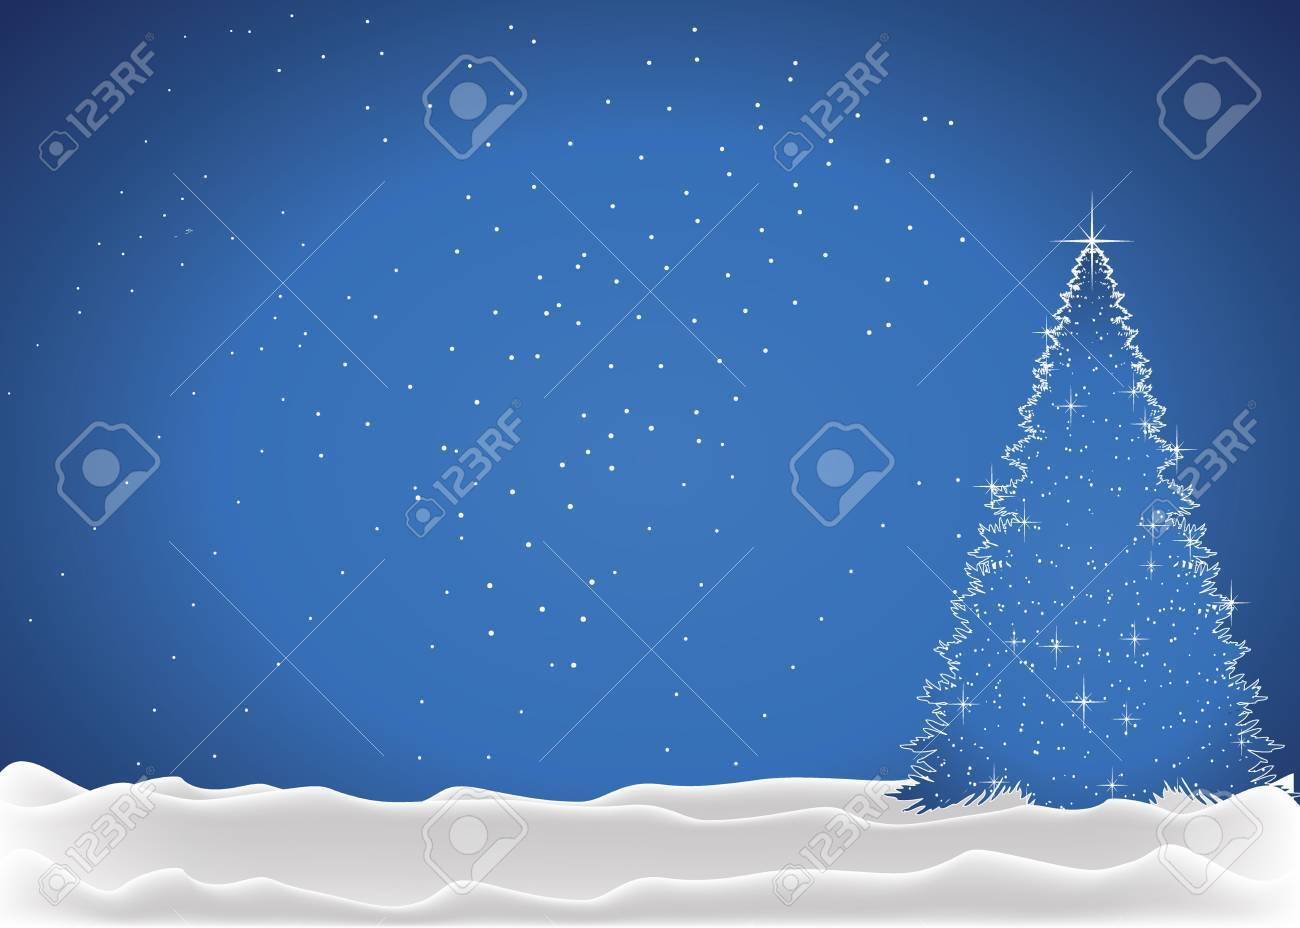 Nice christmas ornaments - Here You Can See Nice Christmas Ornaments Stock Photo 6371397